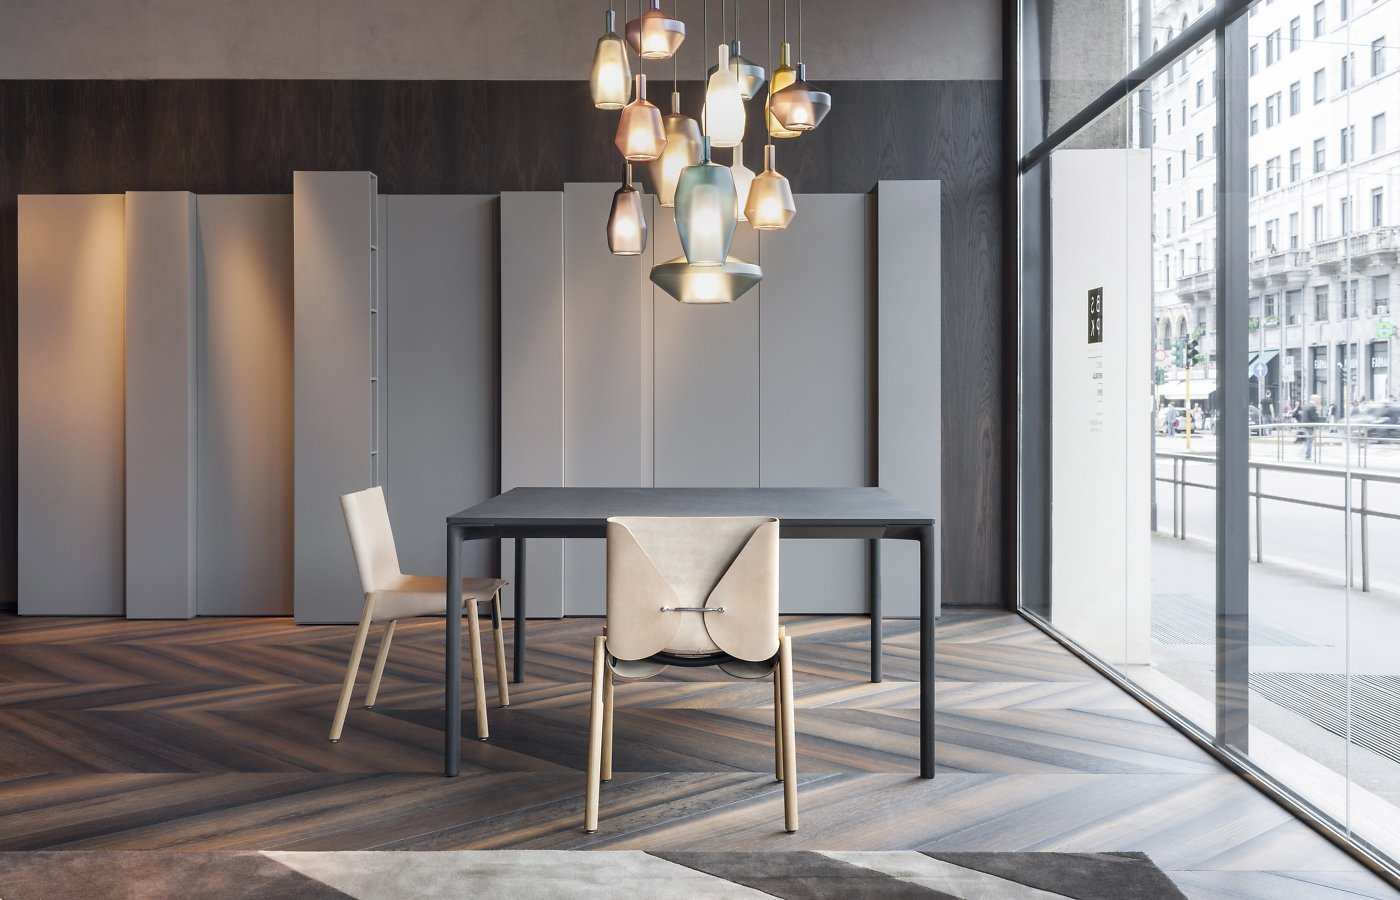 Boiacca Dining Table from Kristalia, designed by Lucidipevere